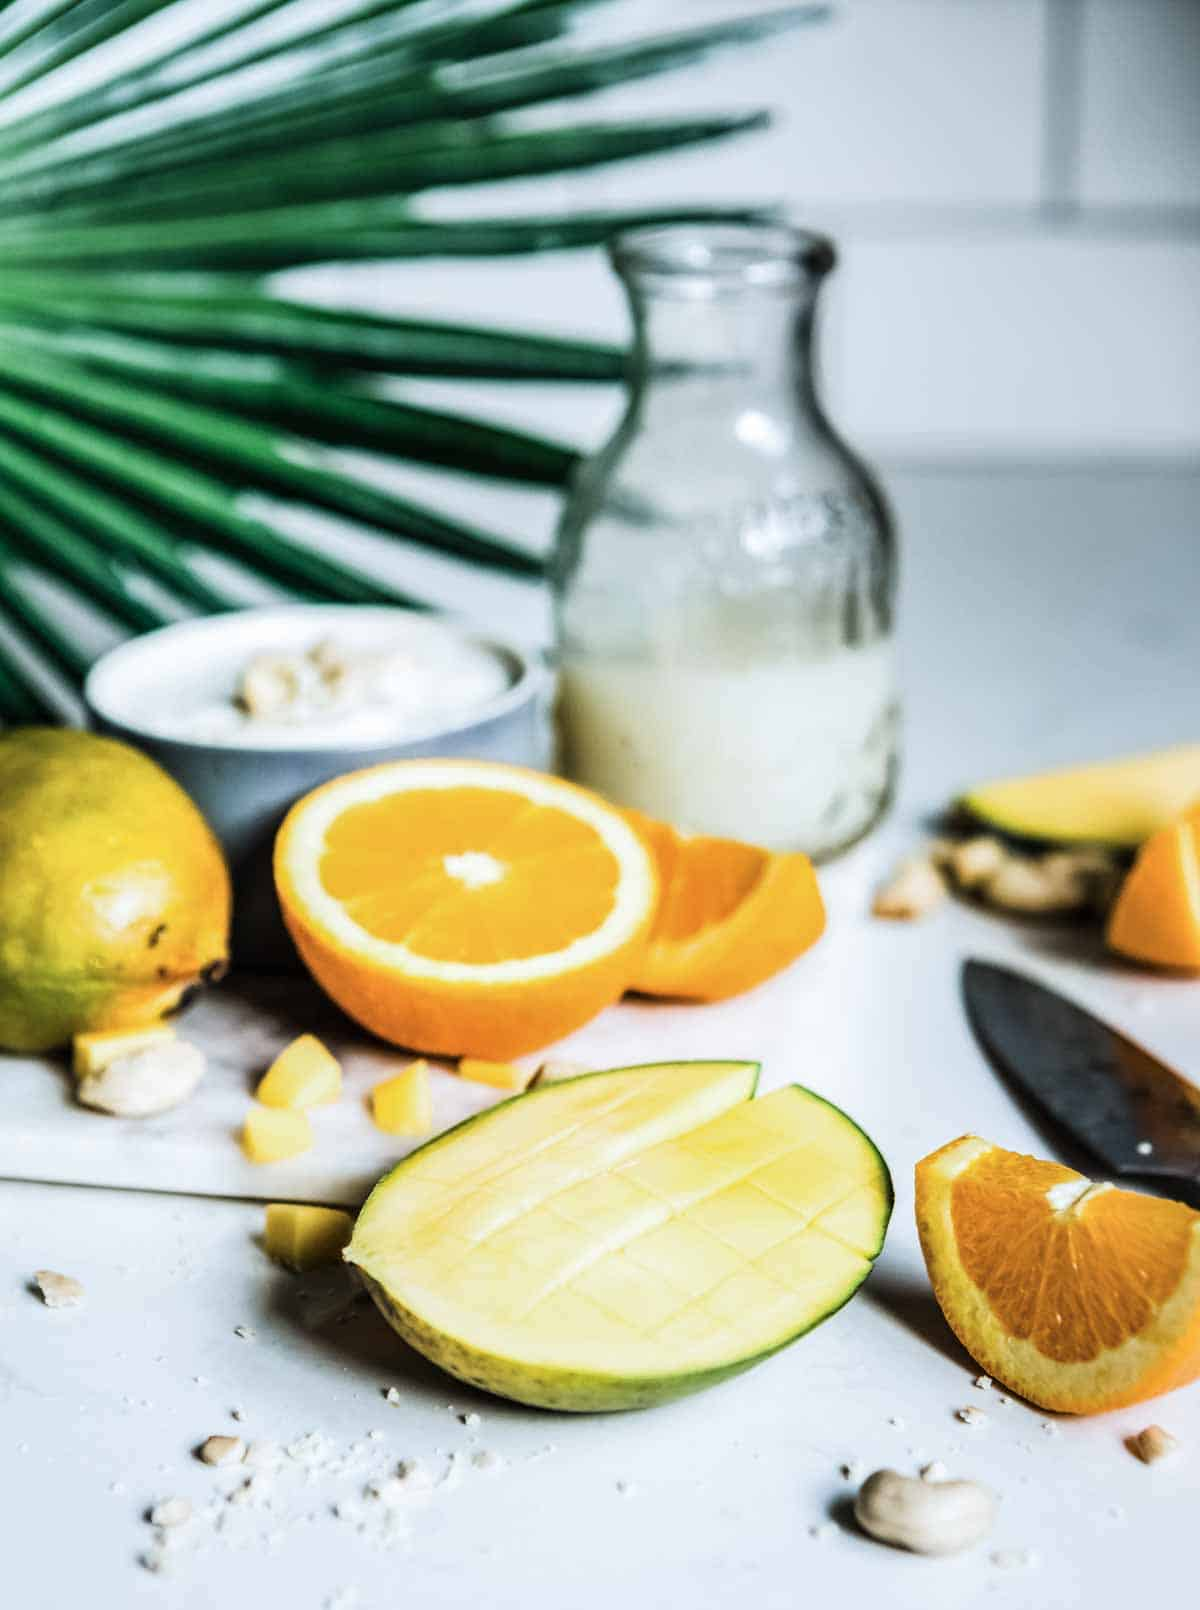 orange fruit to boost immunity